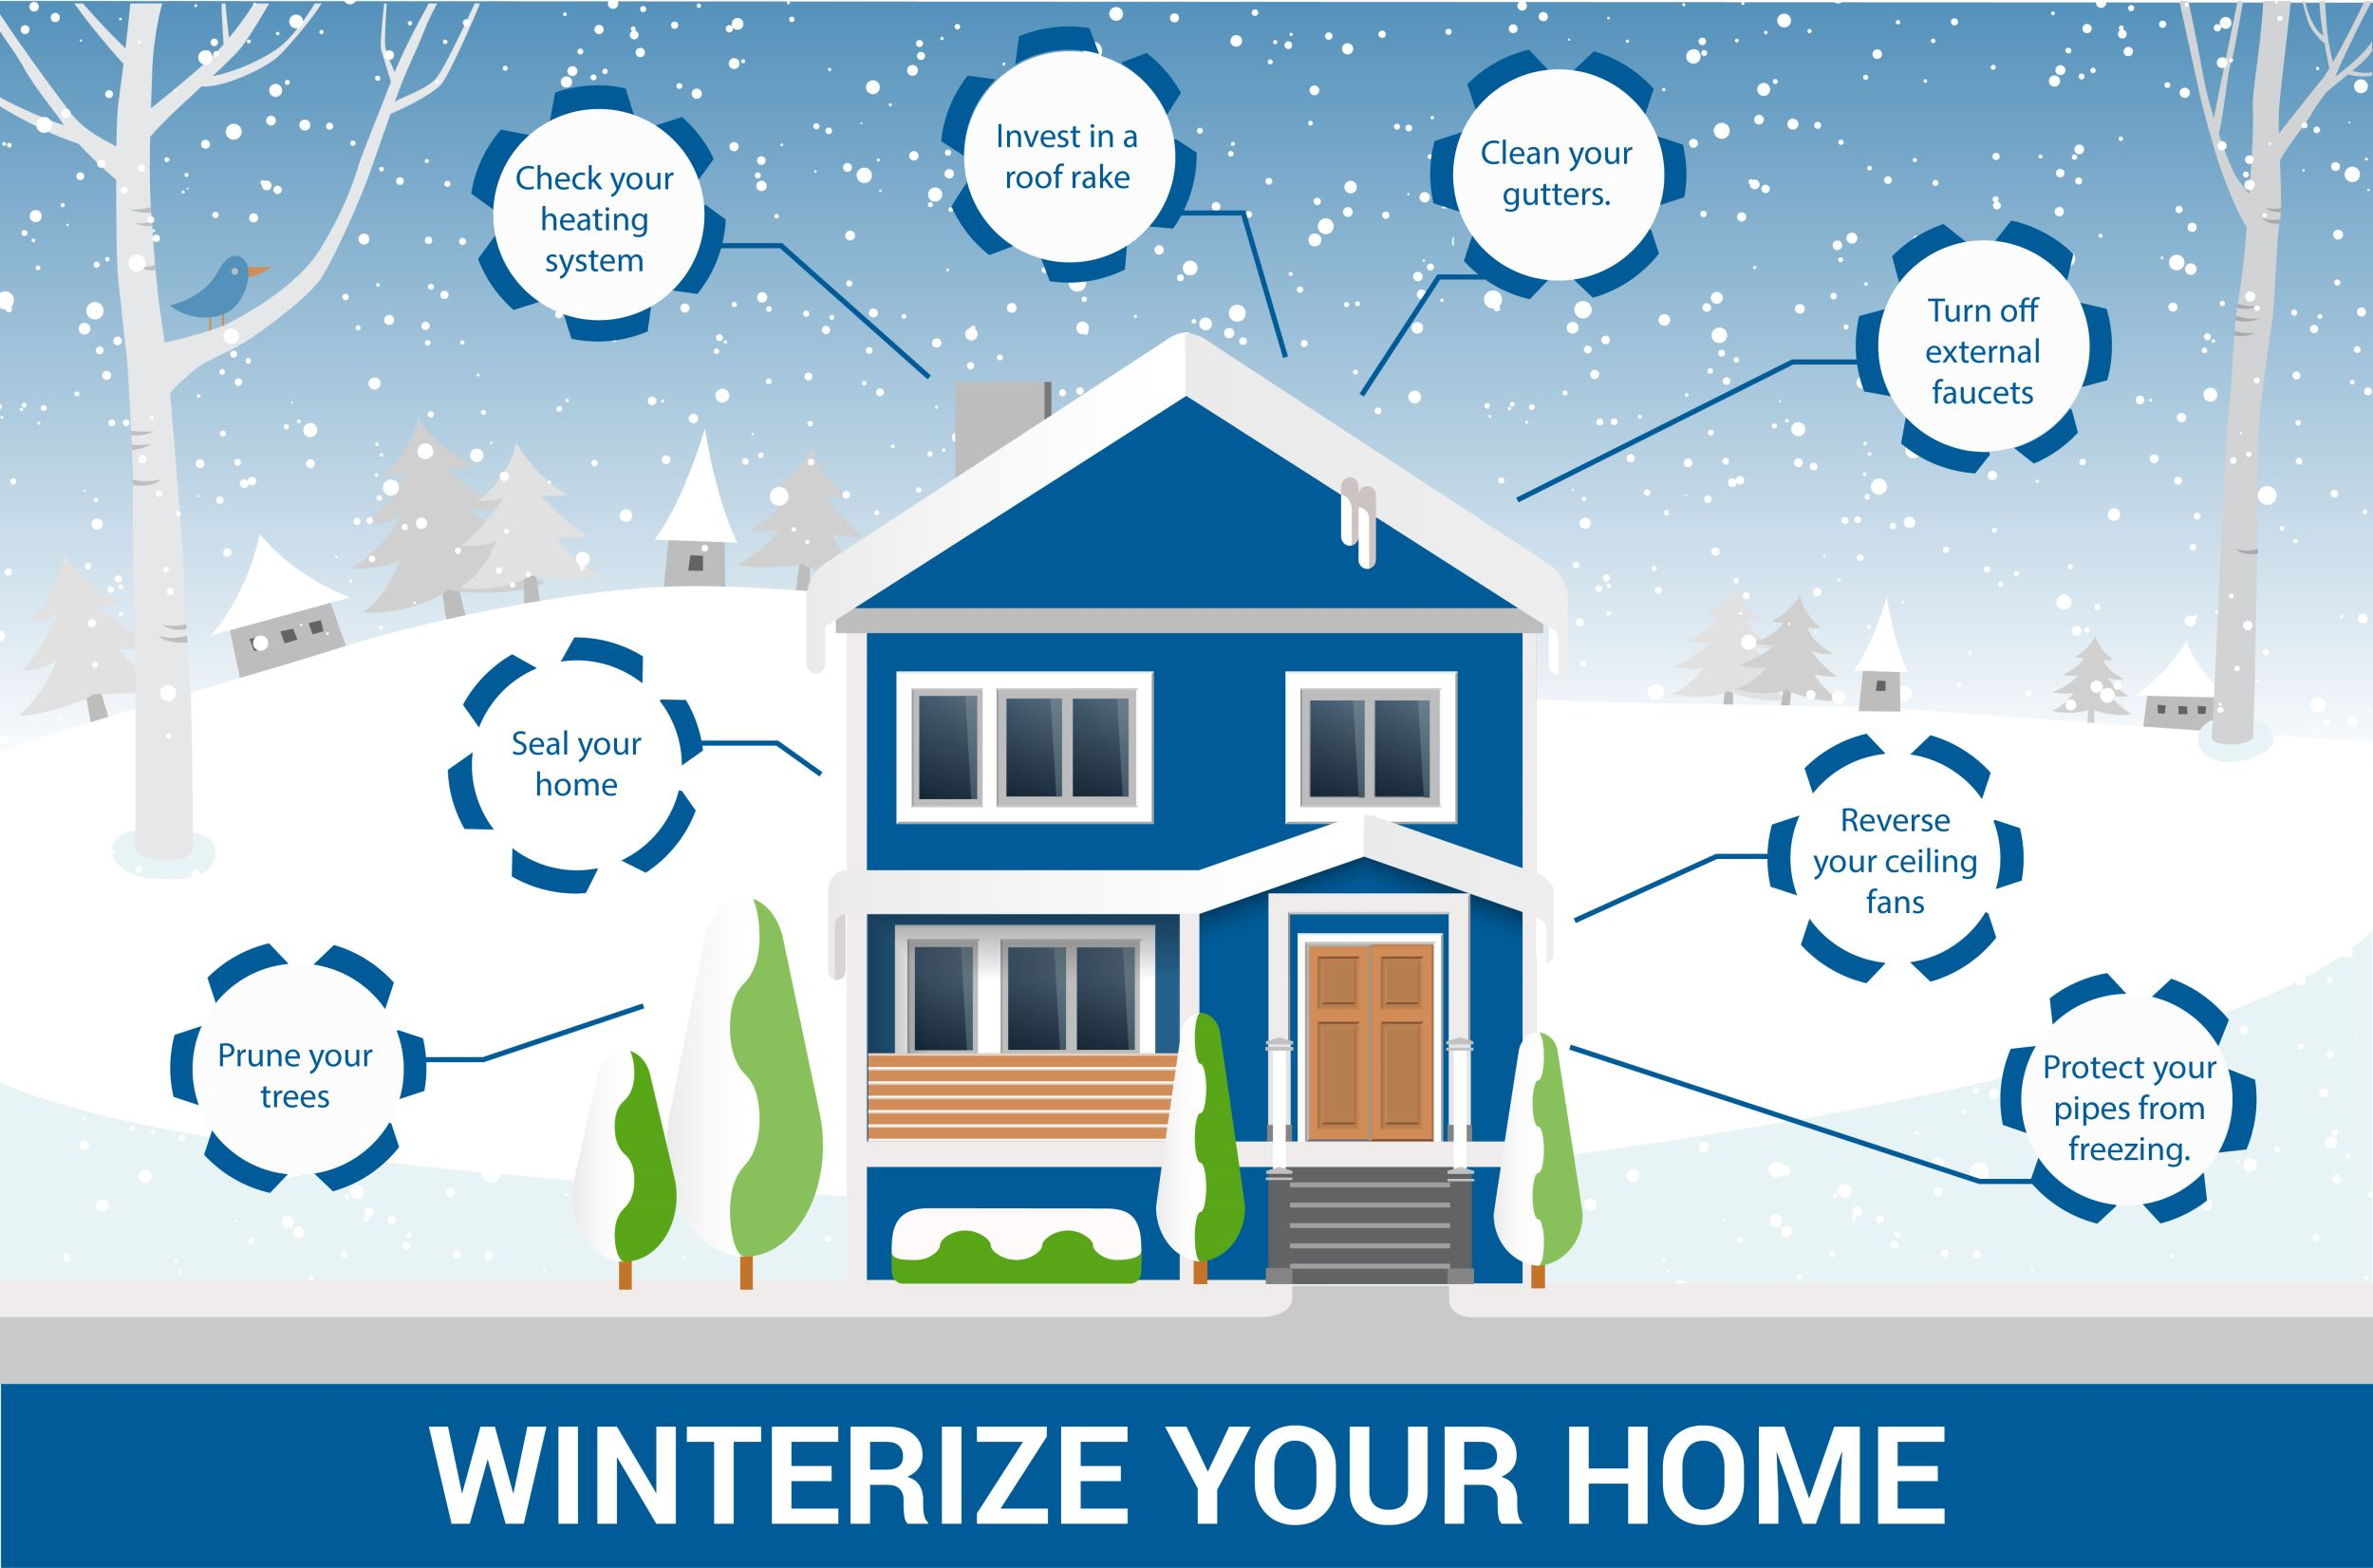 winterize home infographic